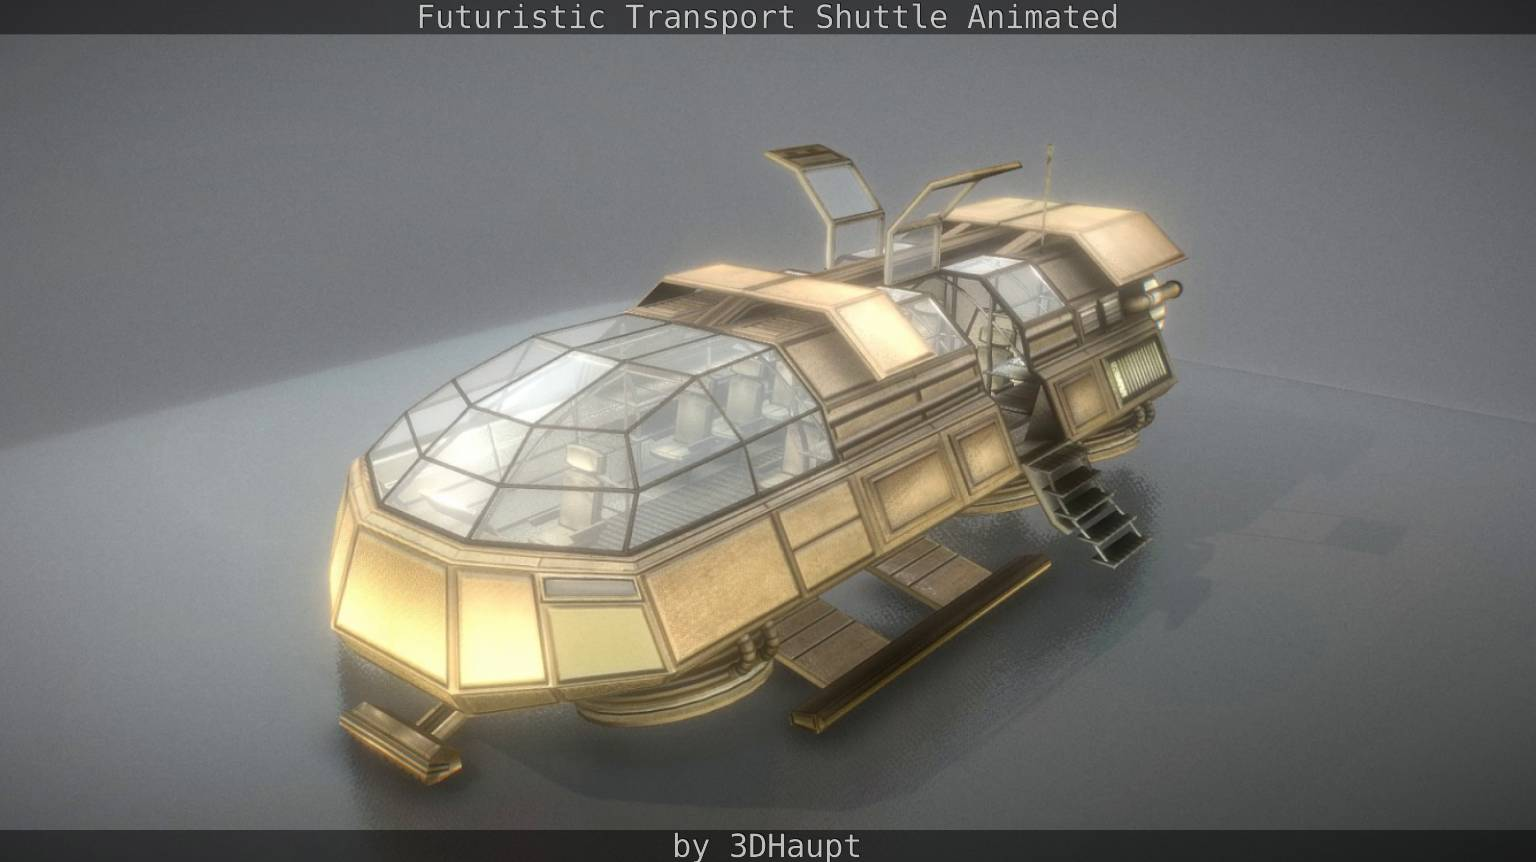 Futuristic Transport Shuttle Animated - Download Free 3D